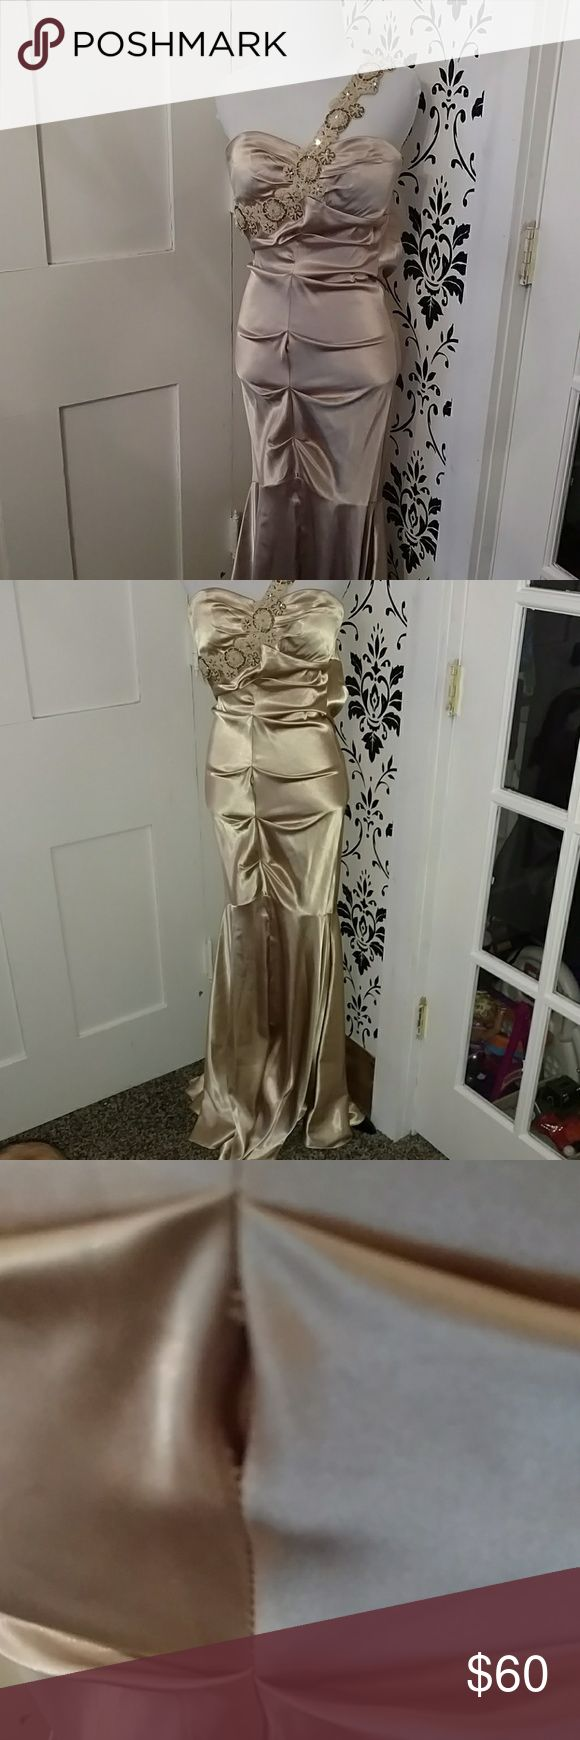 Xscape Size 2 Dress Small spot where the seam is coming apart. Easy fix Xscape Dresses Prom